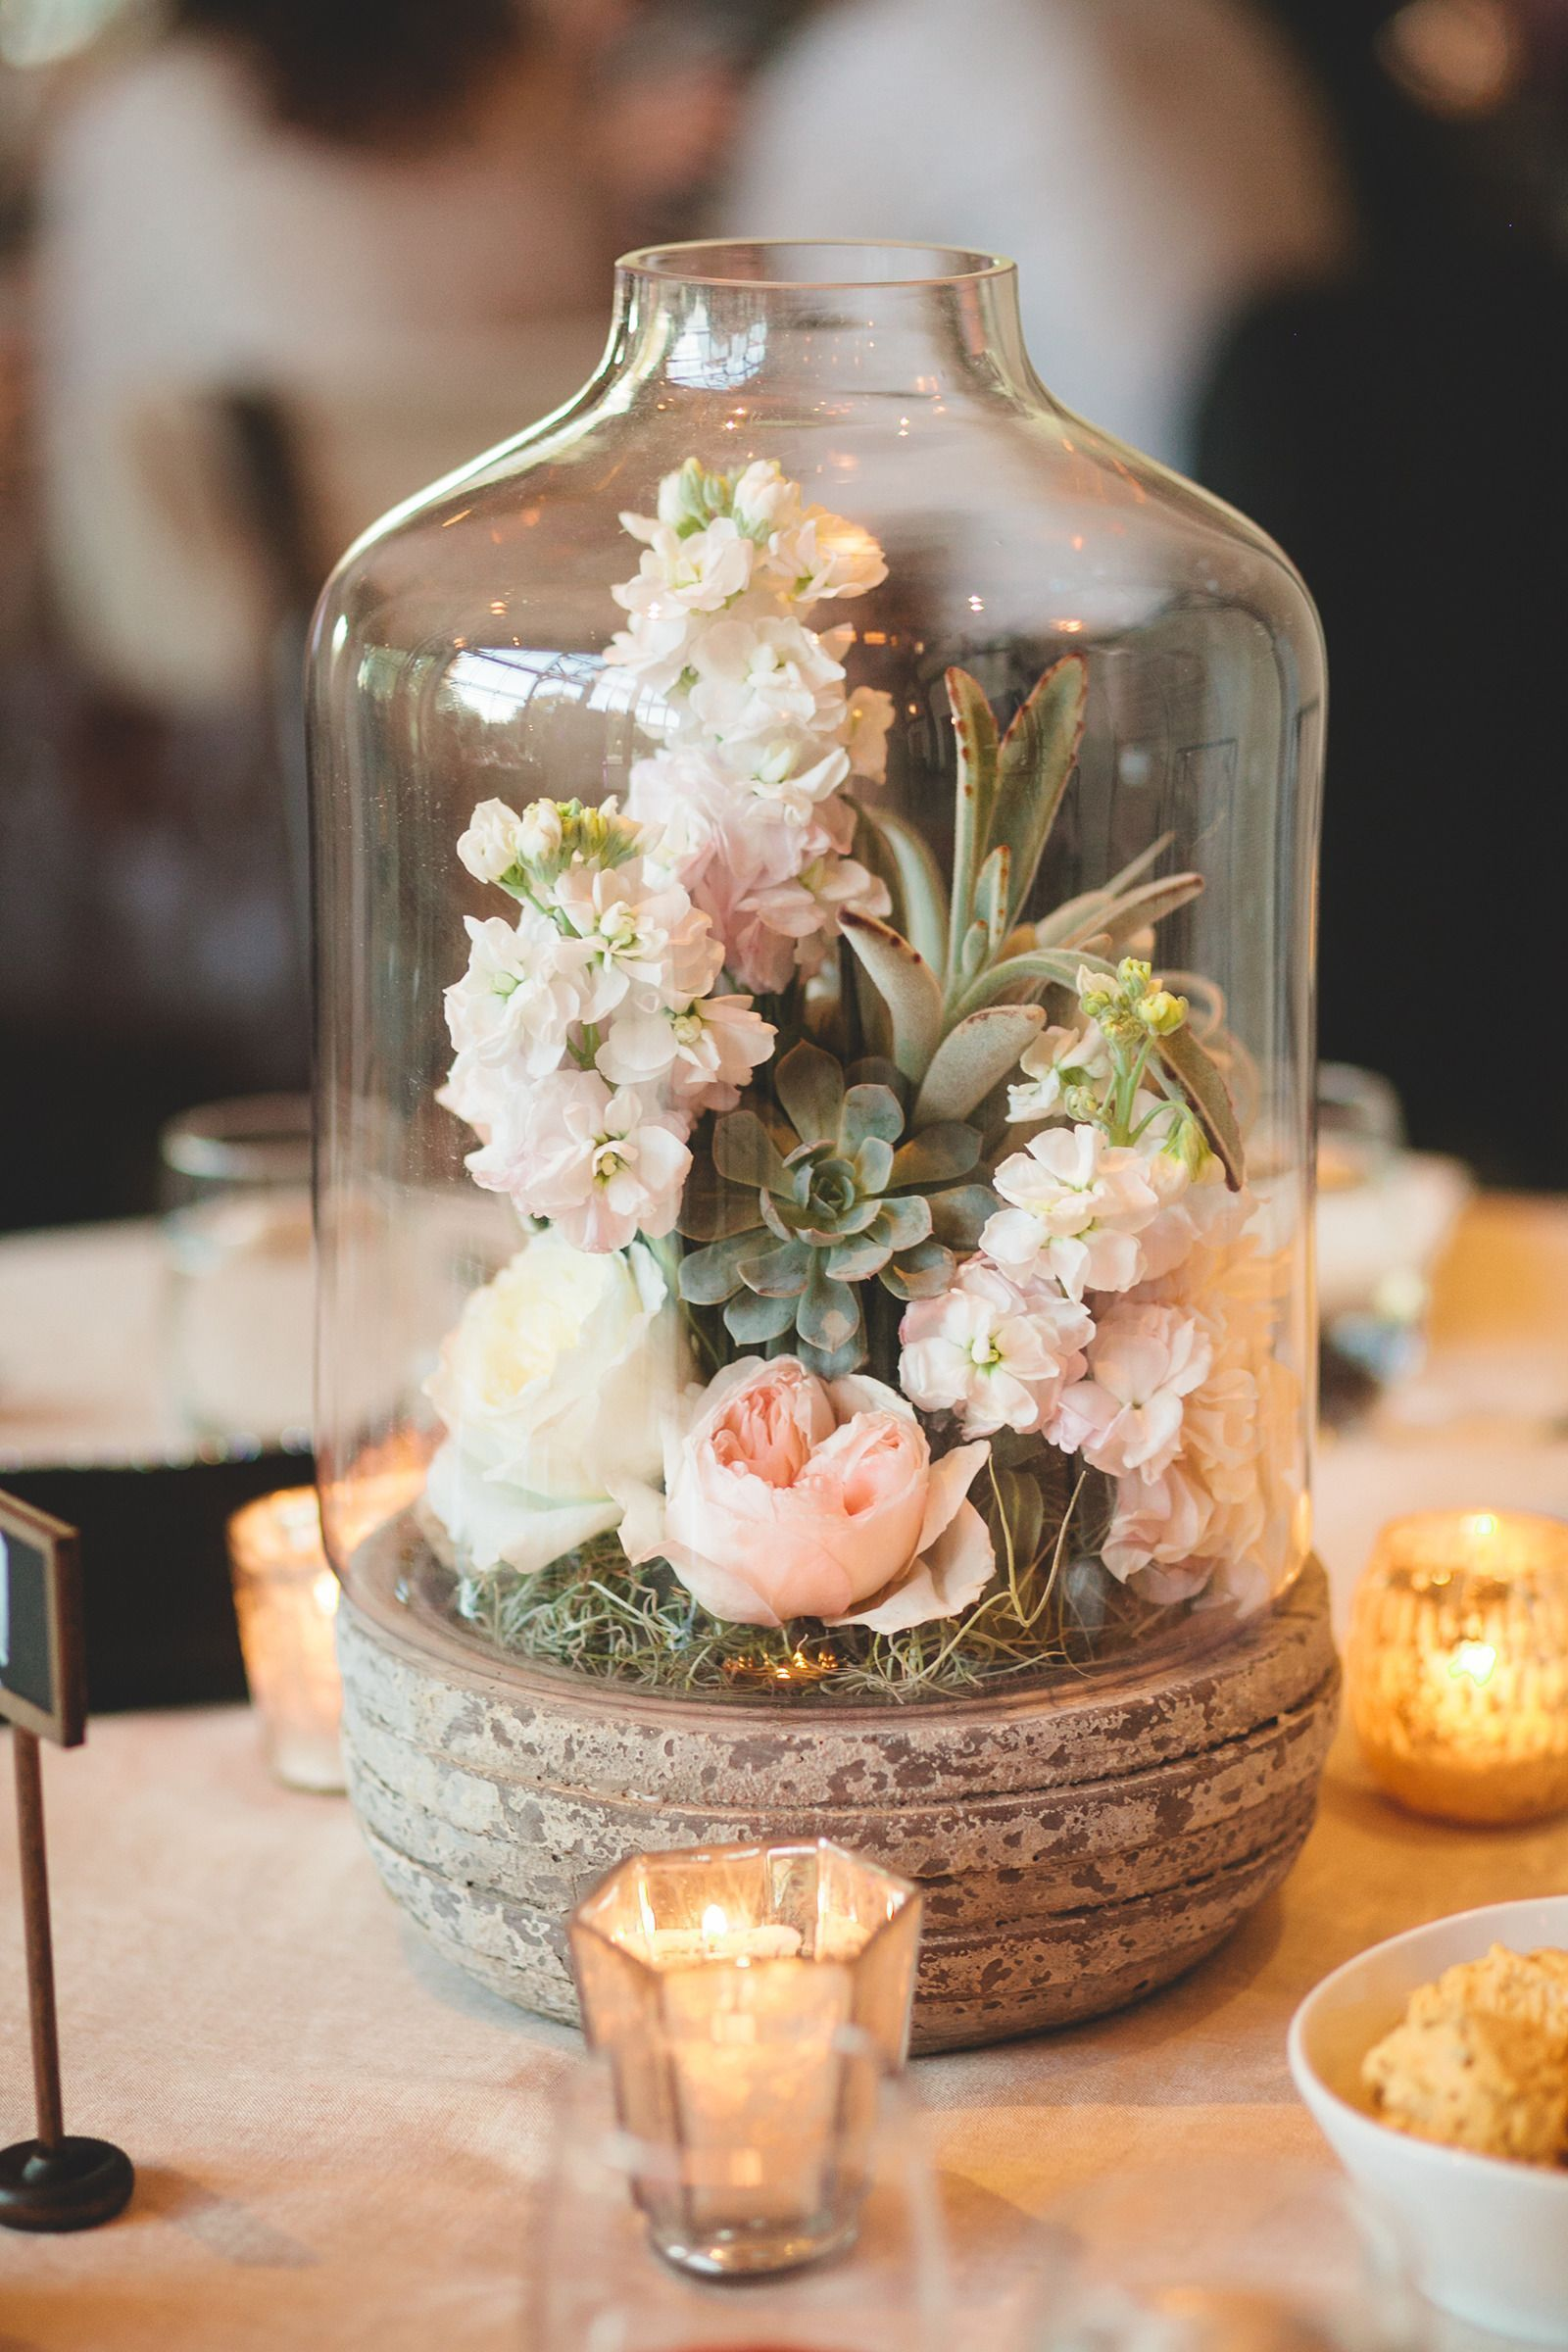 Outstanding rural tablescape image for spring